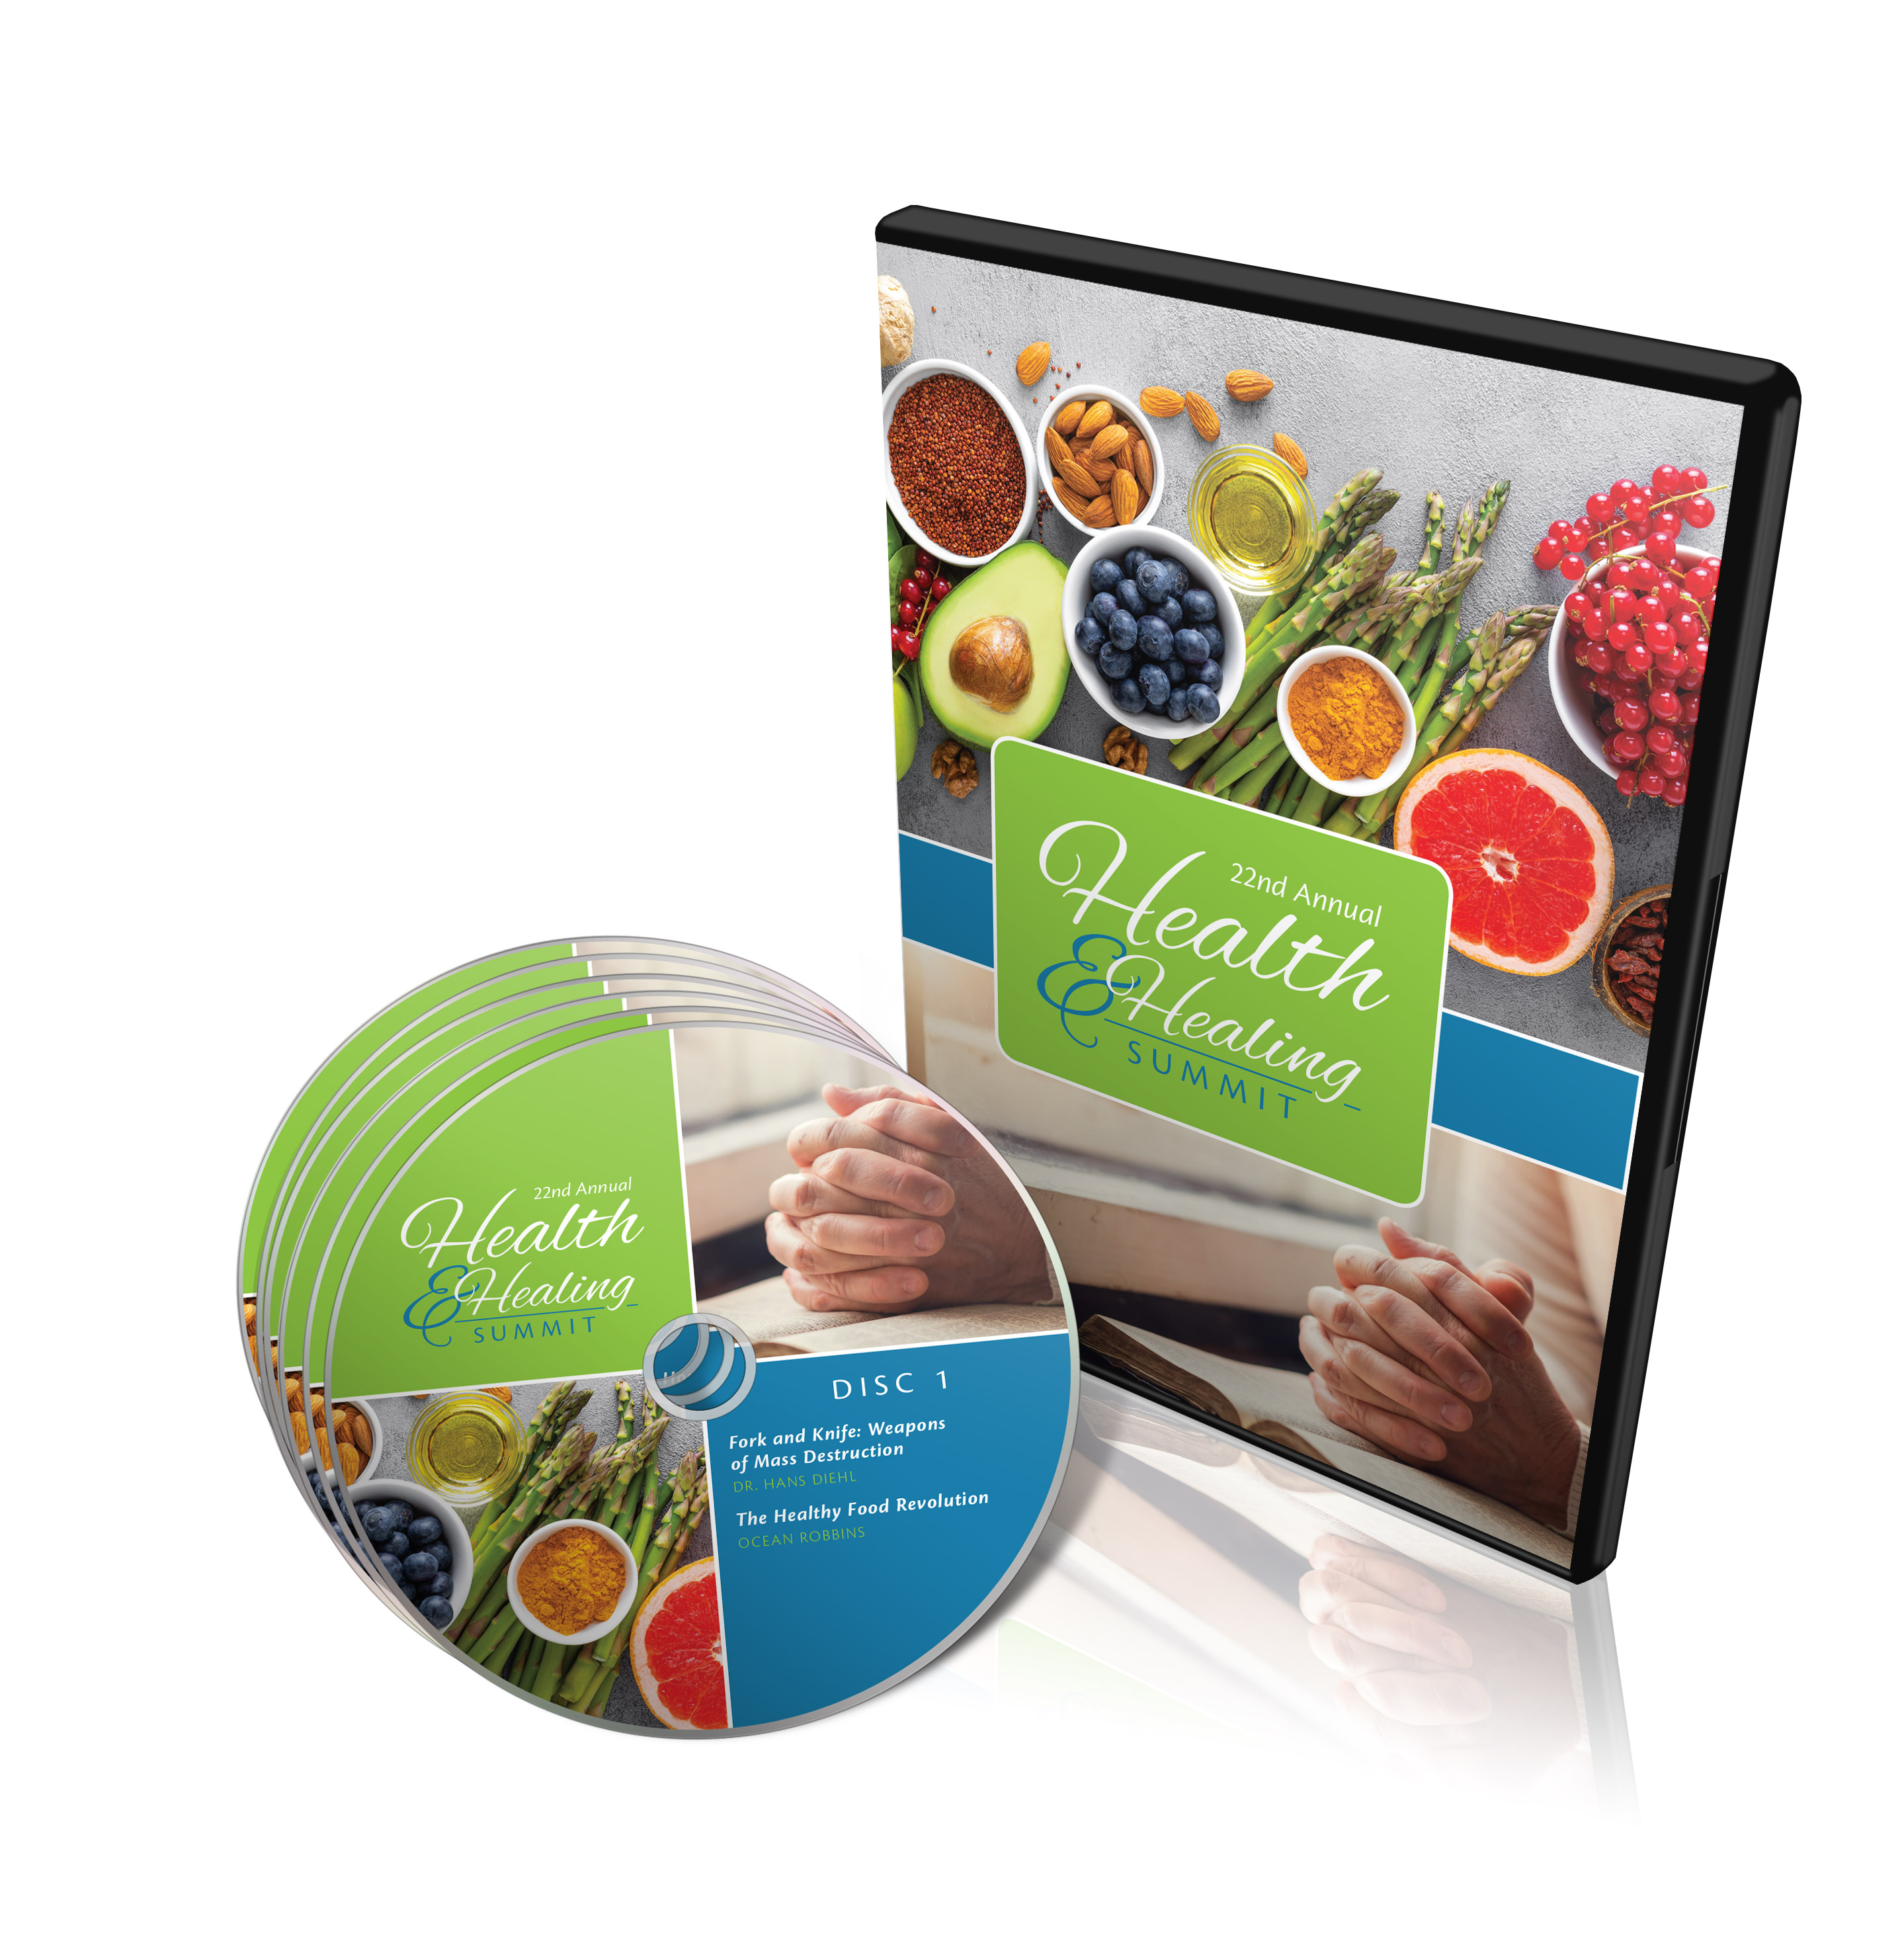 2019 Health and Healing Summit – DVD Series